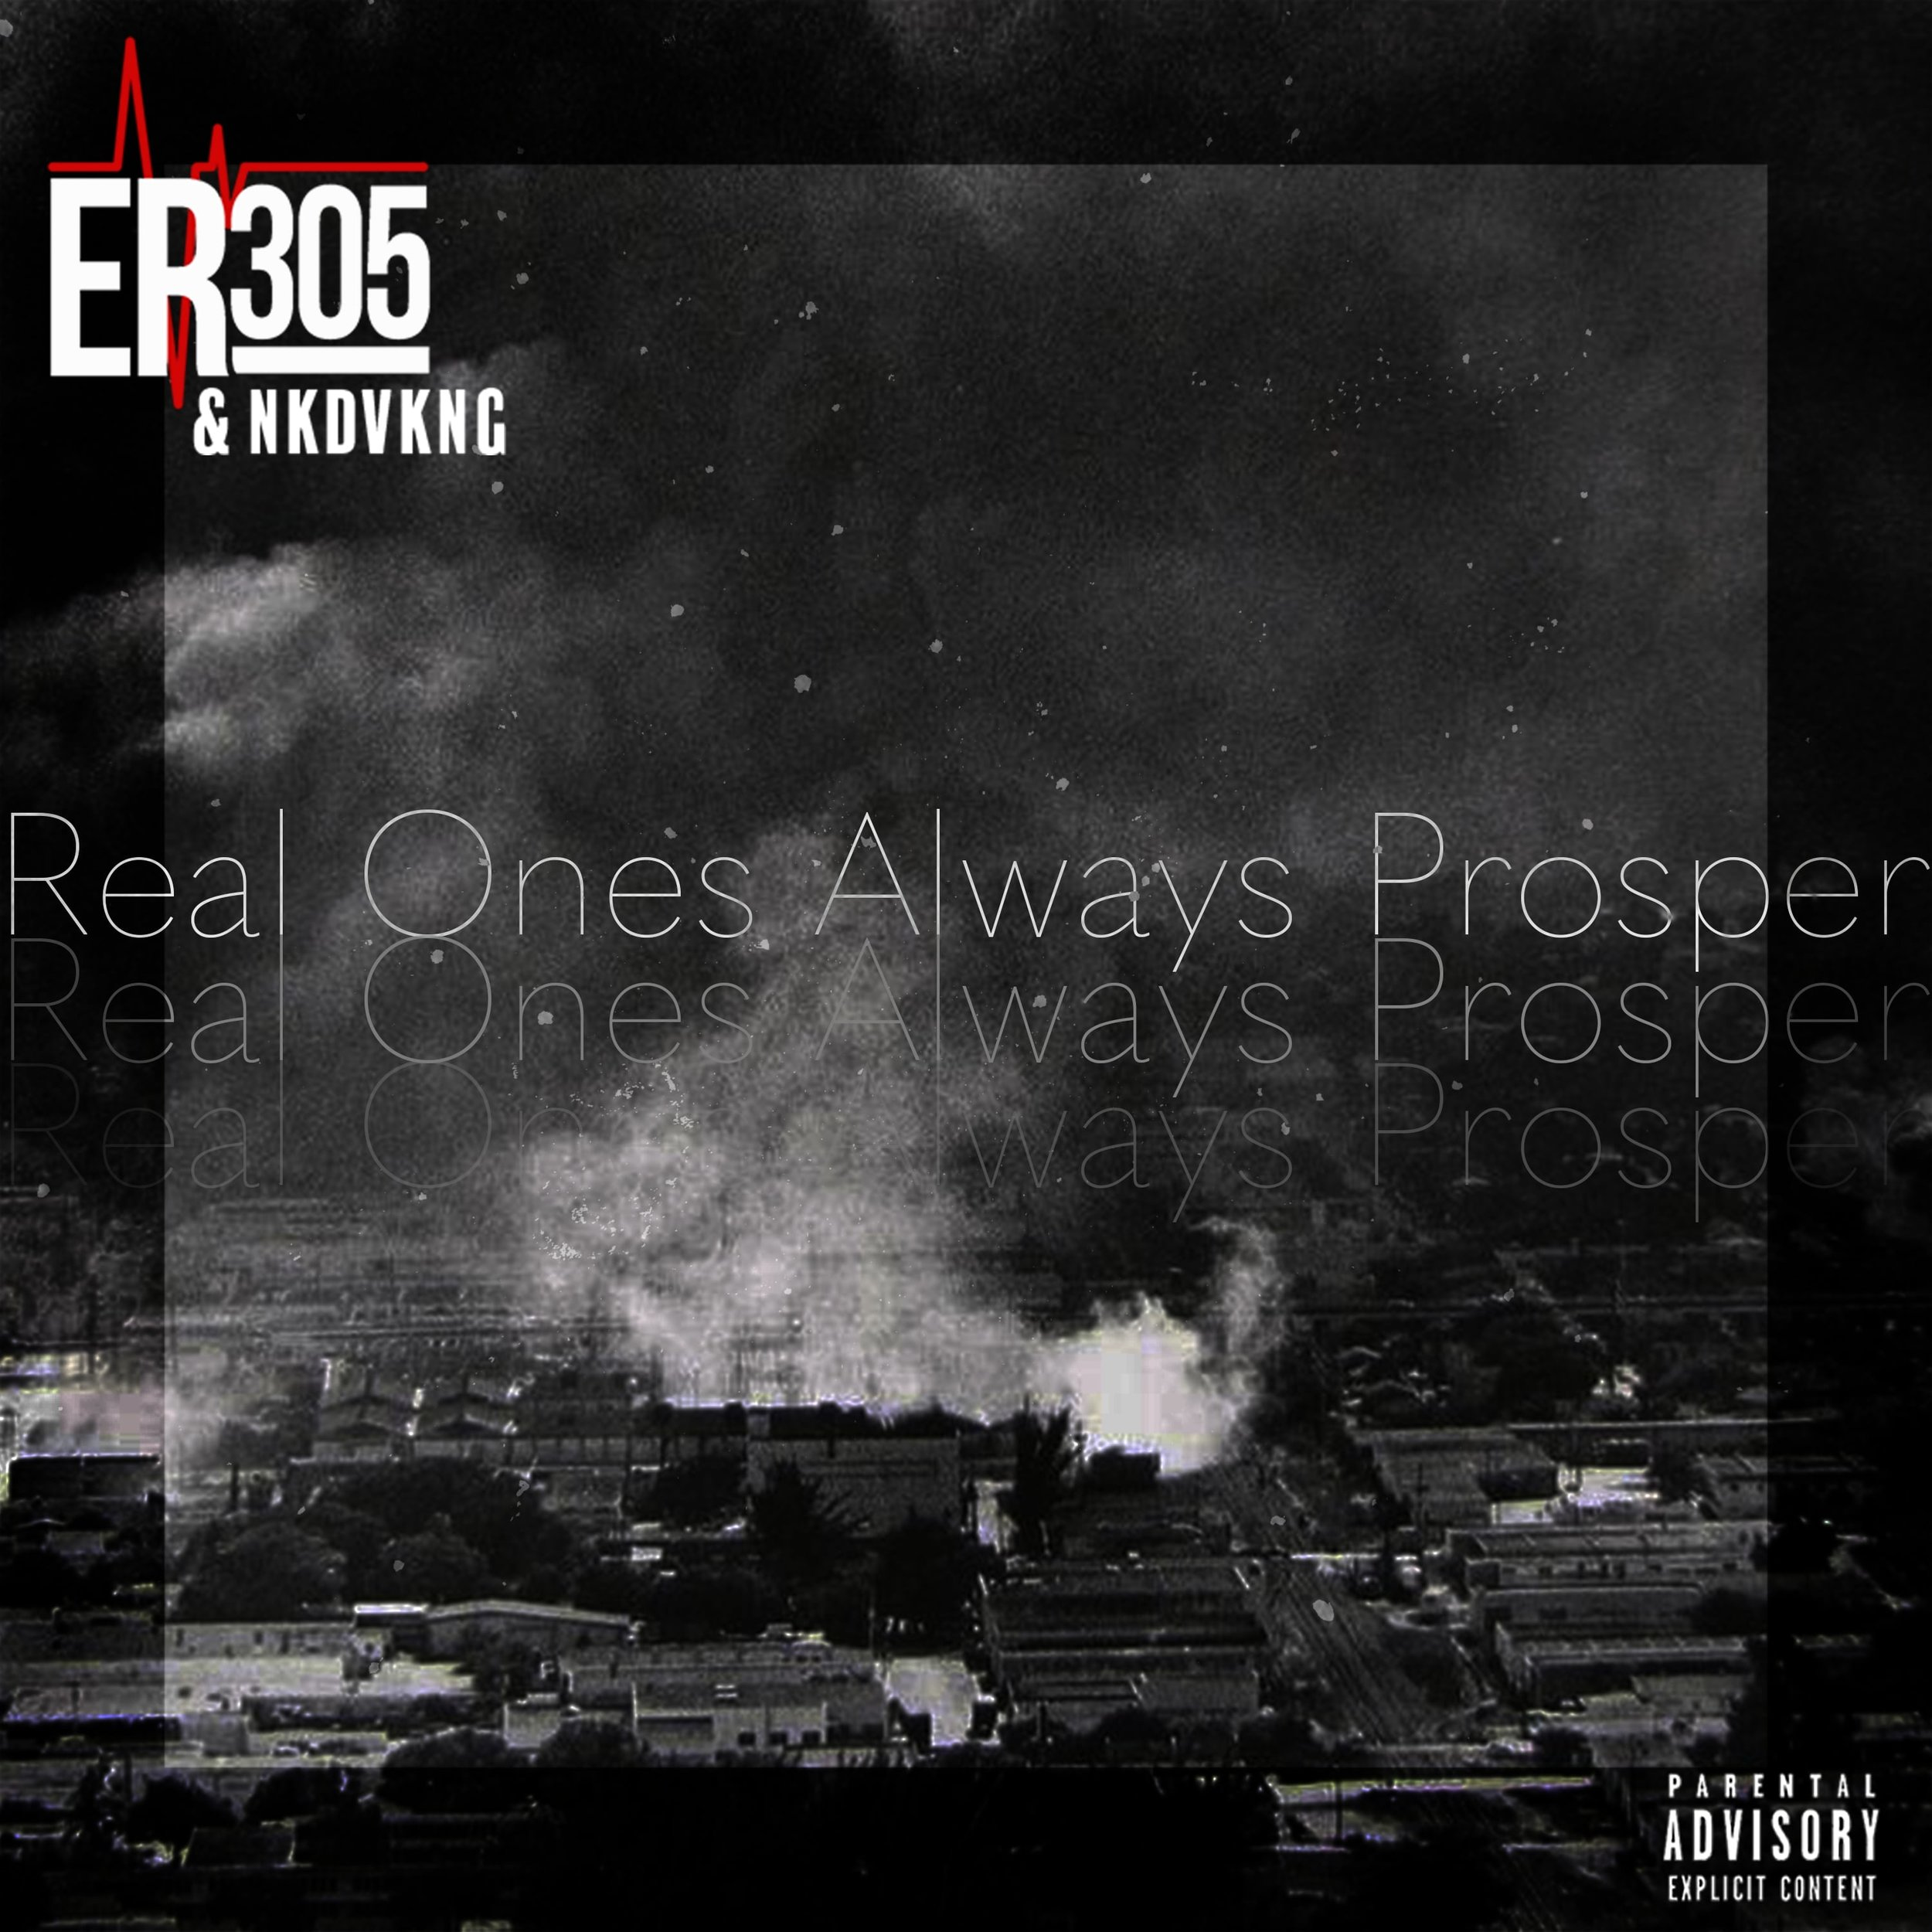 ER305 - Real Ones Always Prosper FRONT.jpg